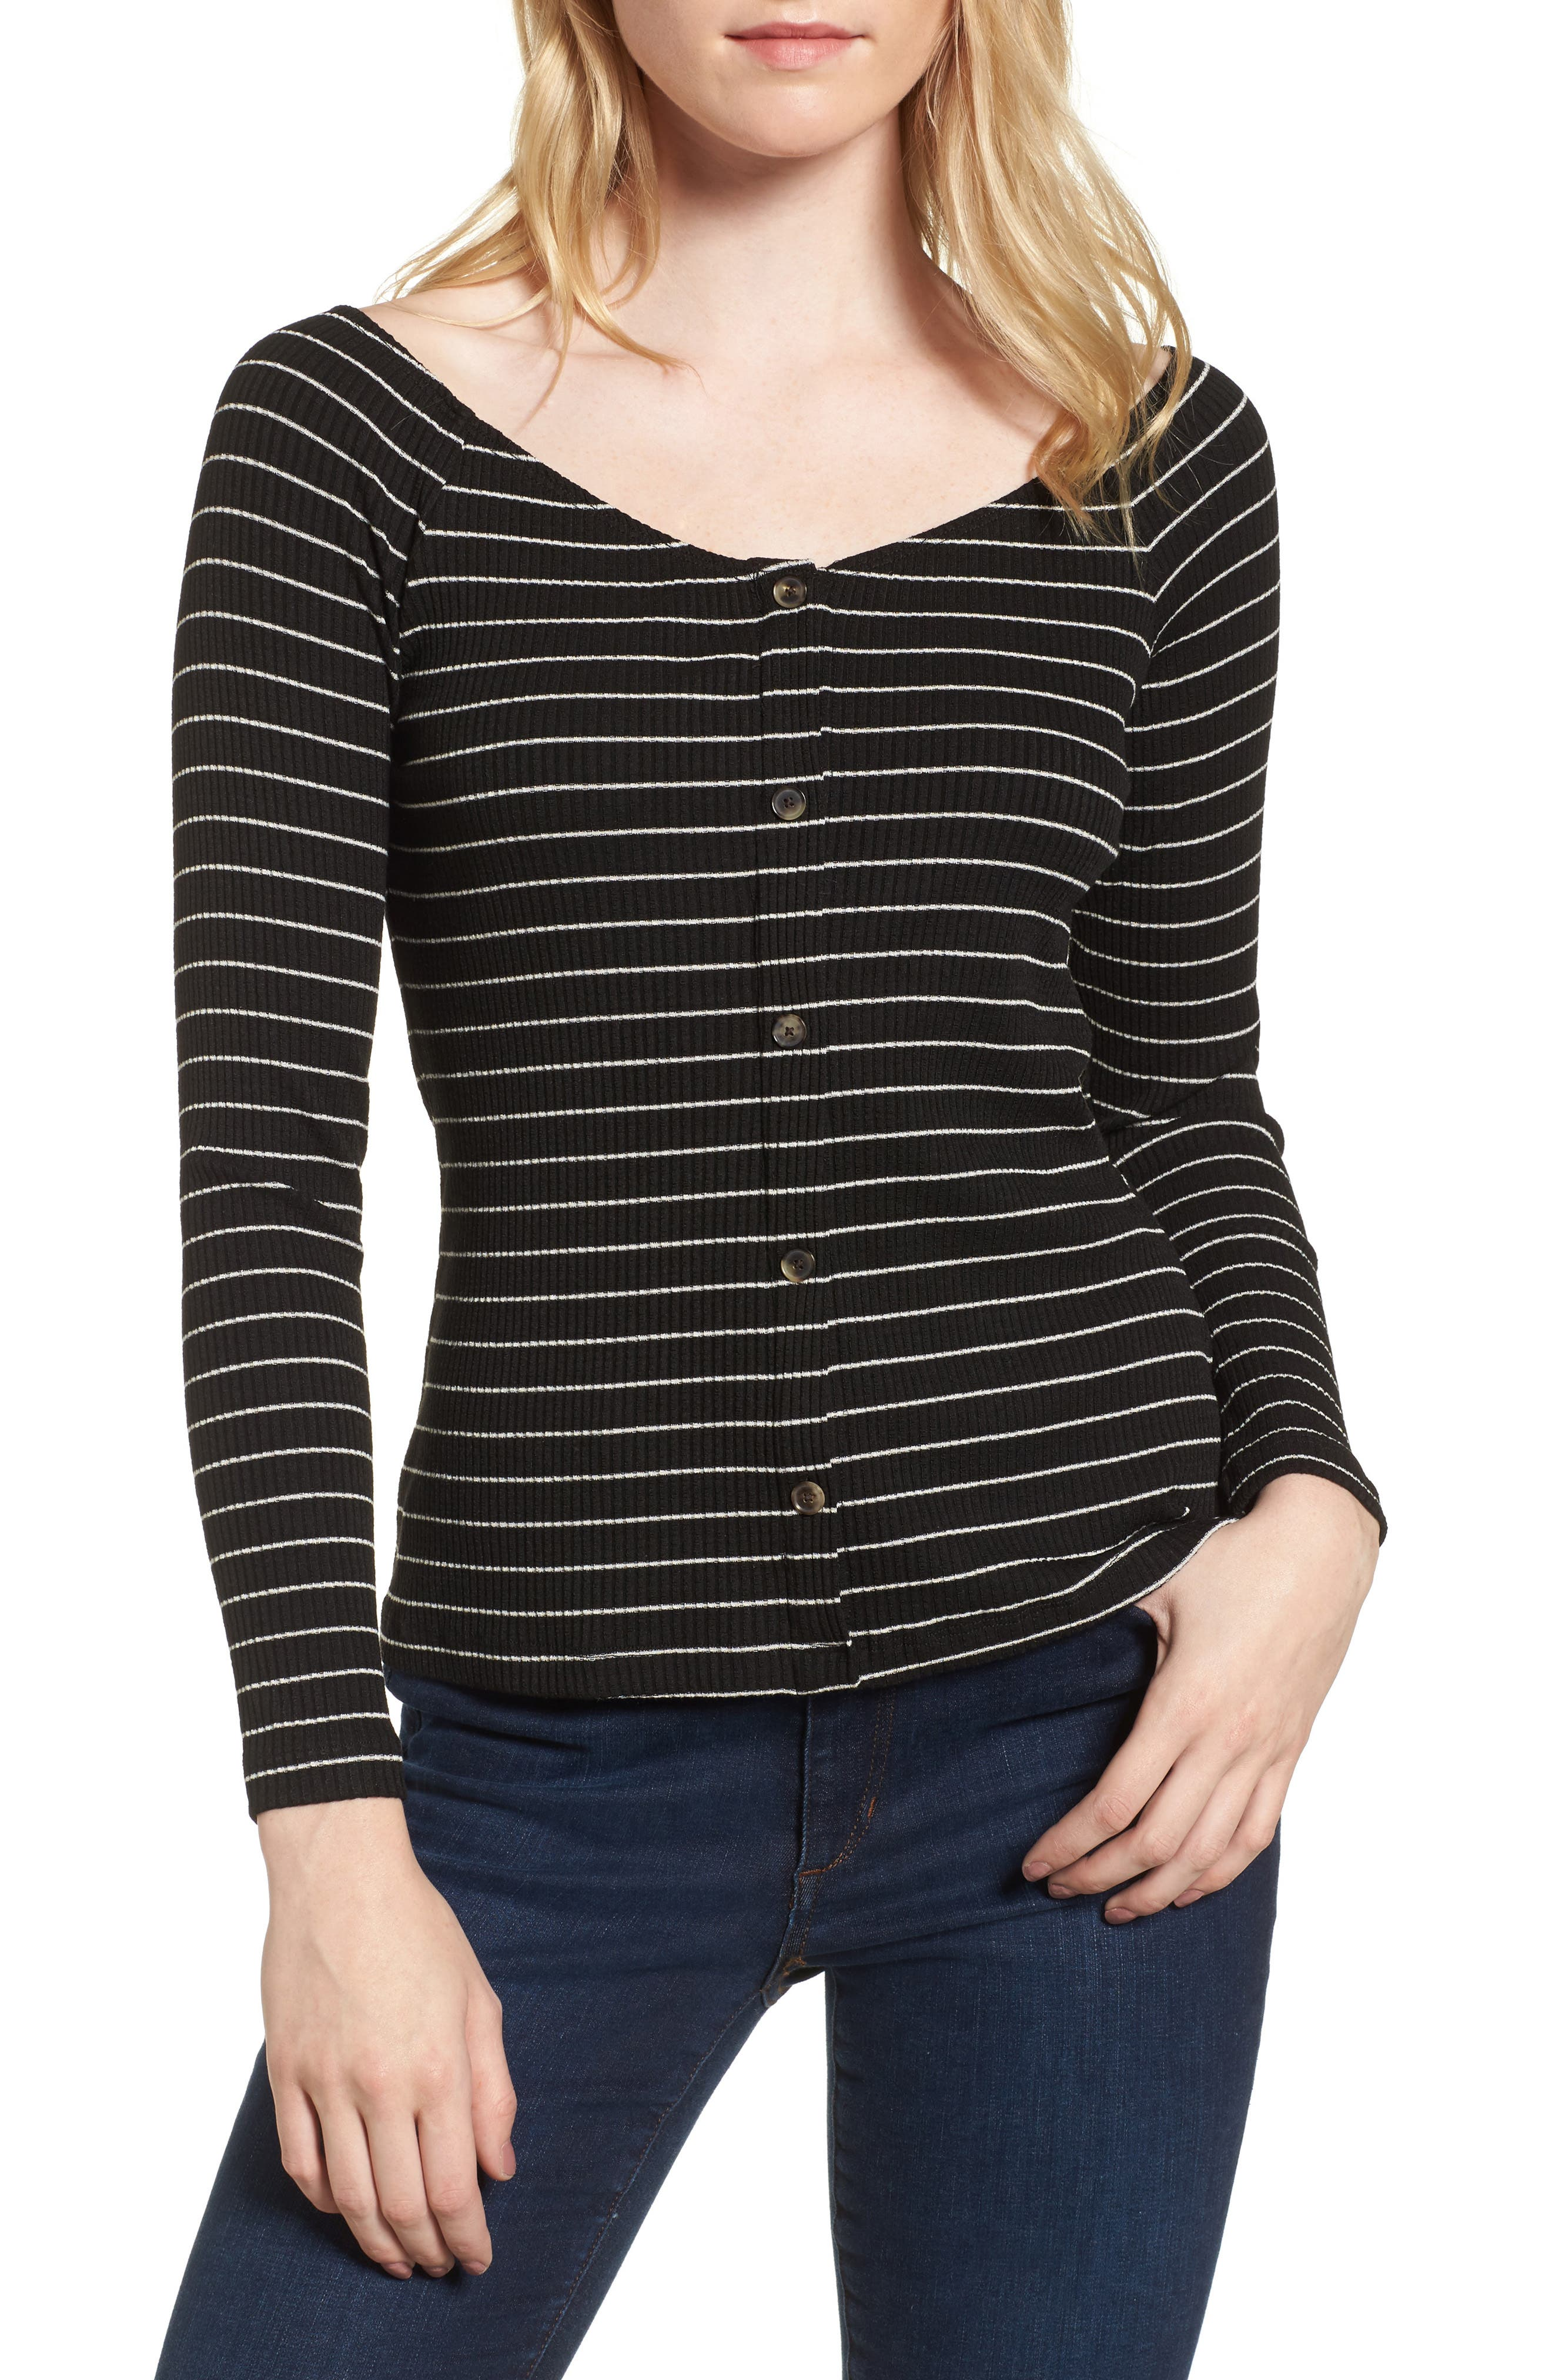 Amour Vert Isadora Ribbed Top